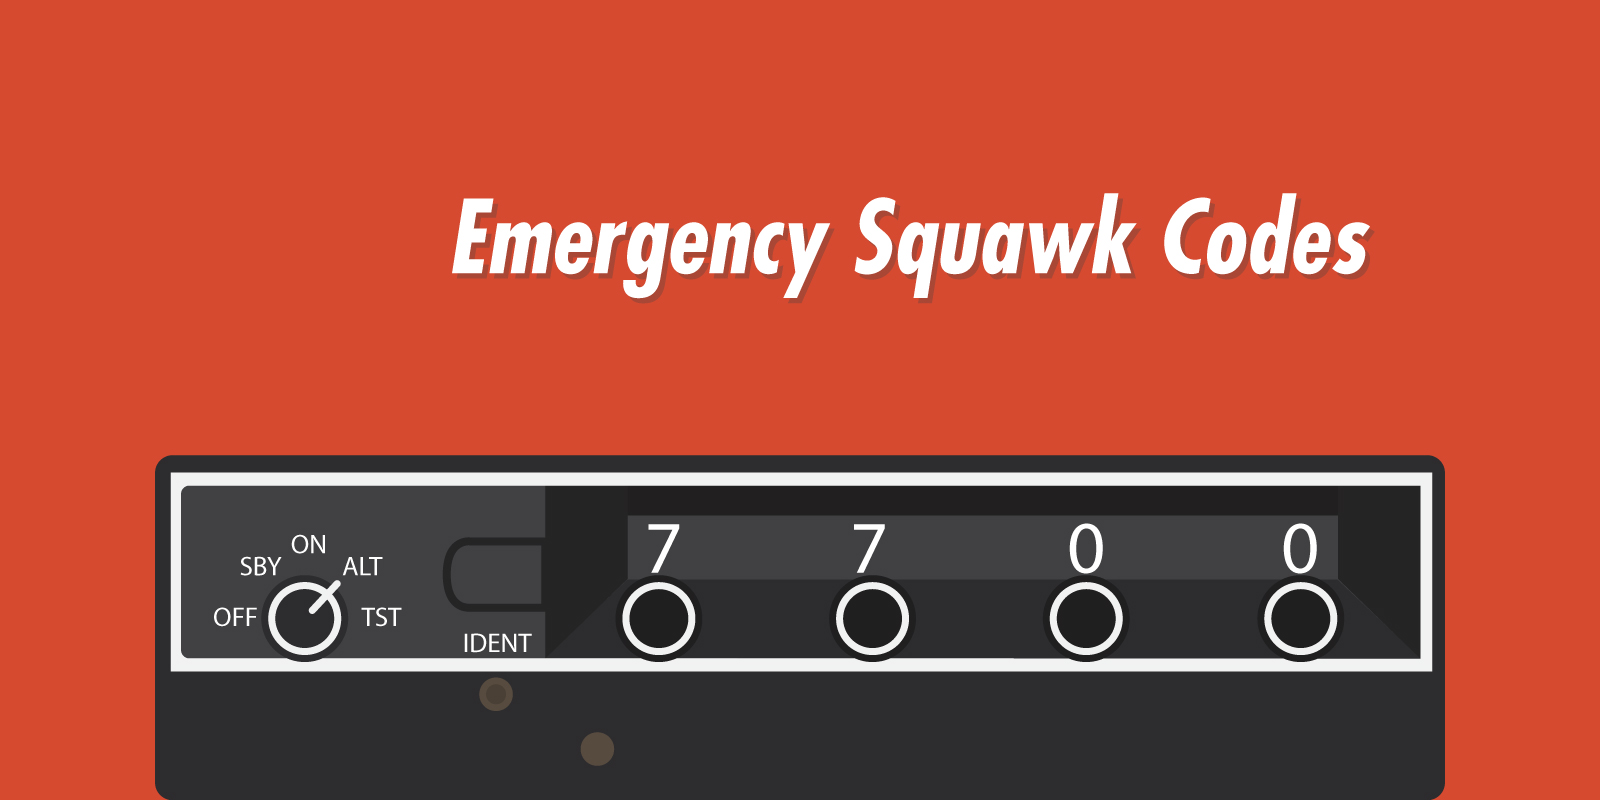 Emergency Squawk Codes